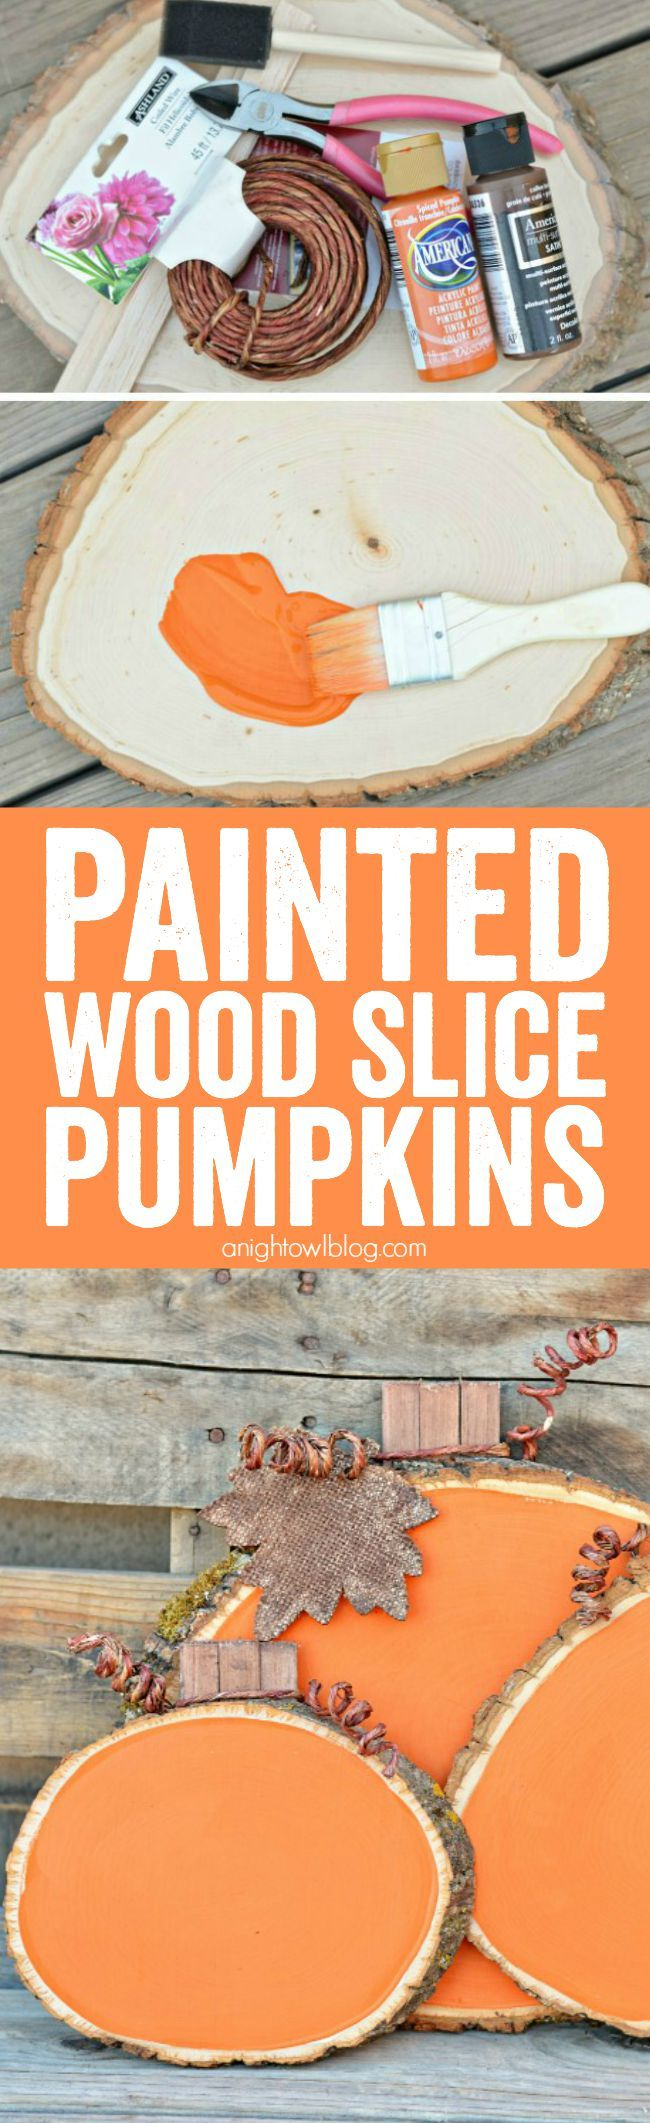 Add some color and whimsy to your Fall Decor with these easy and adorable Painted Wood Slice Pumpkins. #falldecor #pumpkin